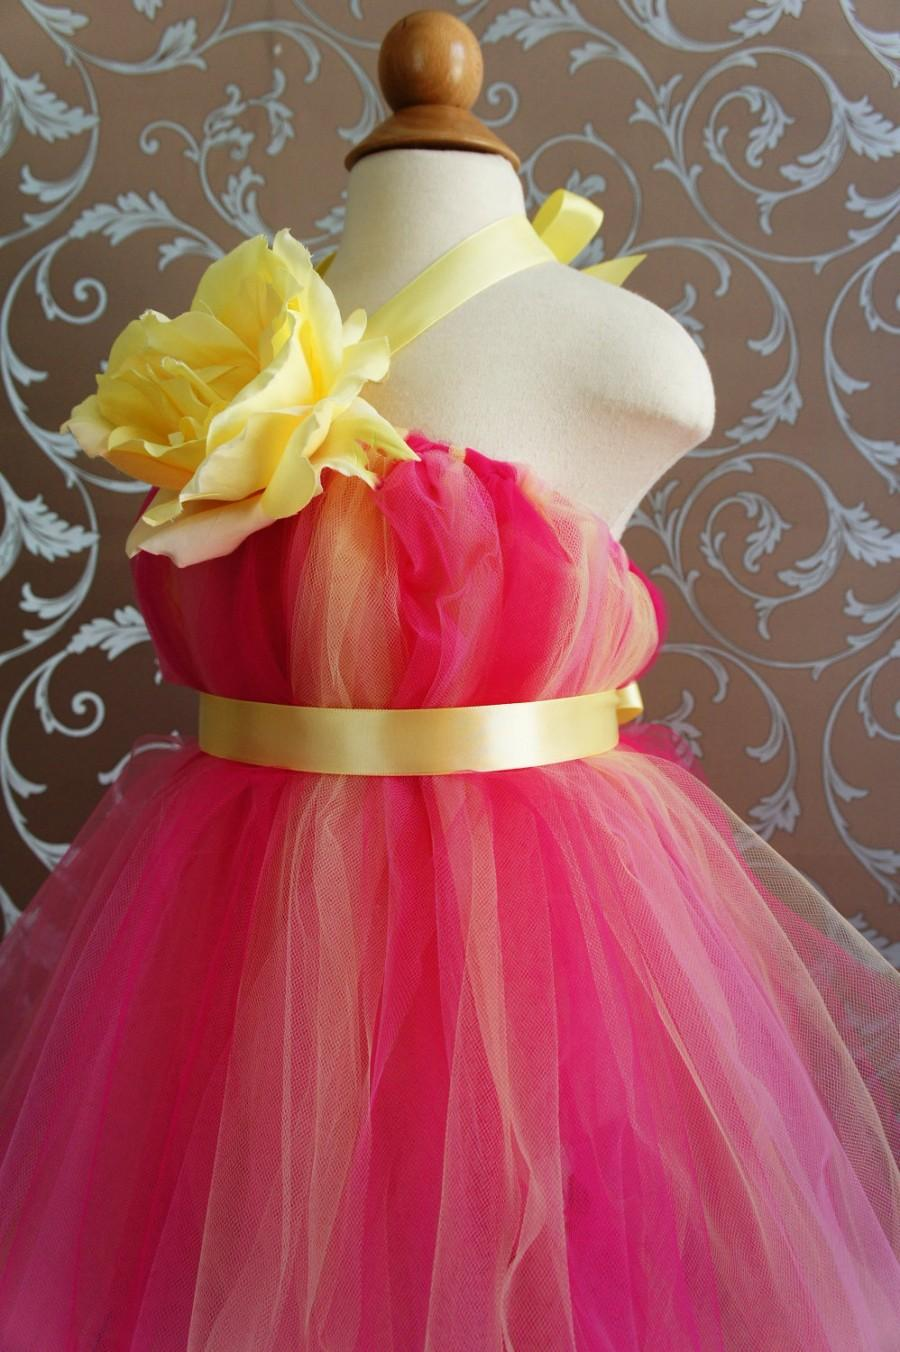 2c5d566bf Flower Girl Tutu Dress, Beautiful Shades of Hot Pink and Yellow, with  Delicate Oversized Rose, tutu dress, flower top, toddler tutu dress